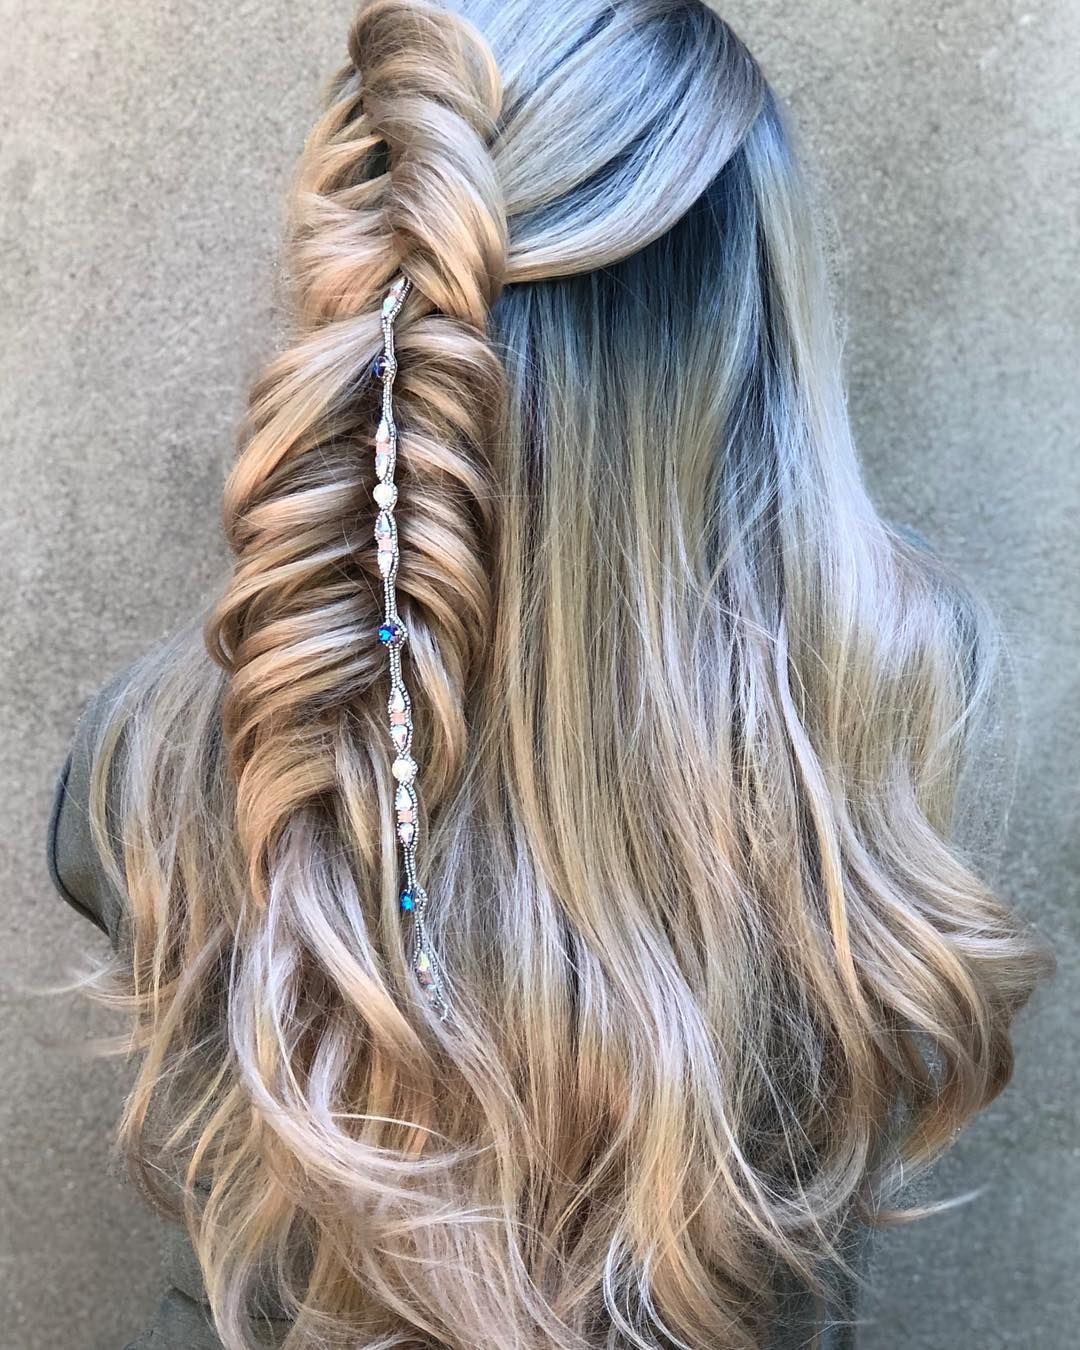 Xxl Waves Hair Style Hairstyles Hairstyles For Medium Length Hair Hairstyles For Short Hair Hairstyles Hair Styles Cool Hairstyles Medium Length Hair Styles